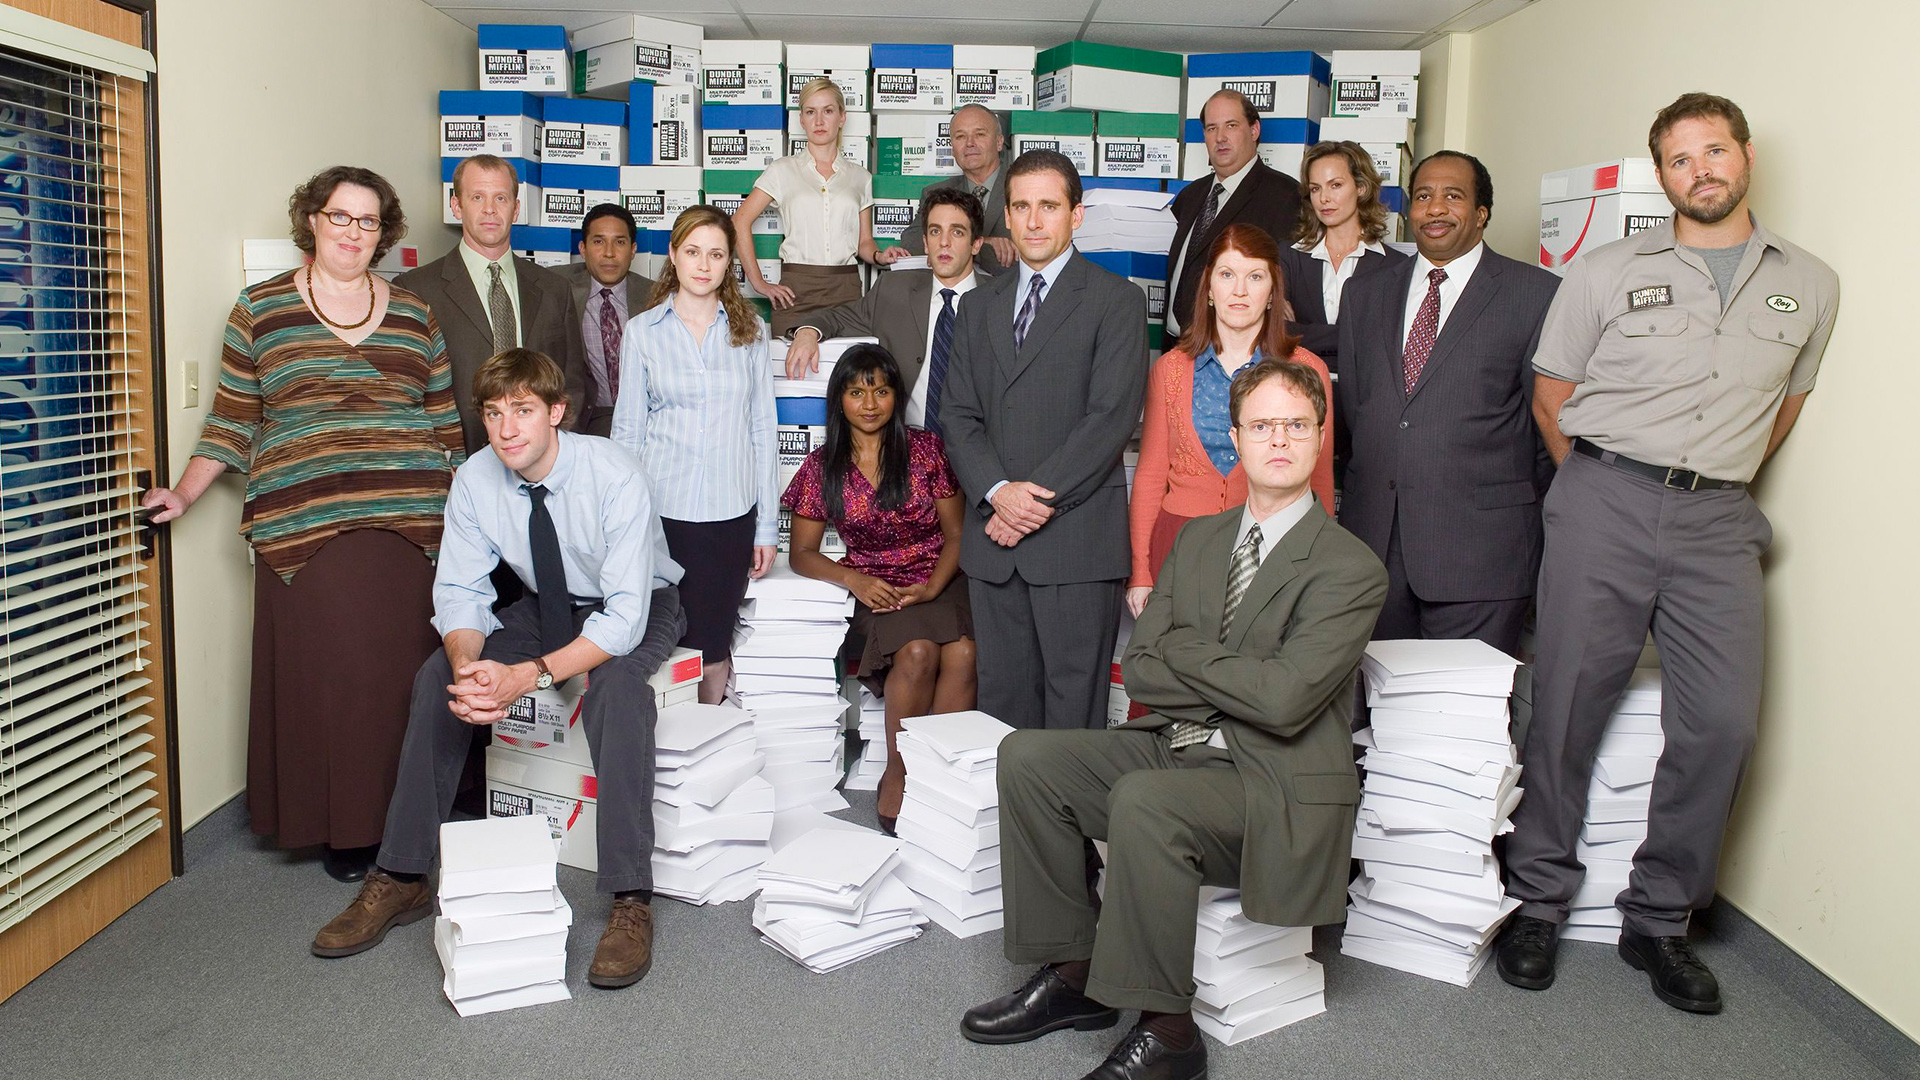 The Office is a weirdly accurate depiction of a successful workplace!